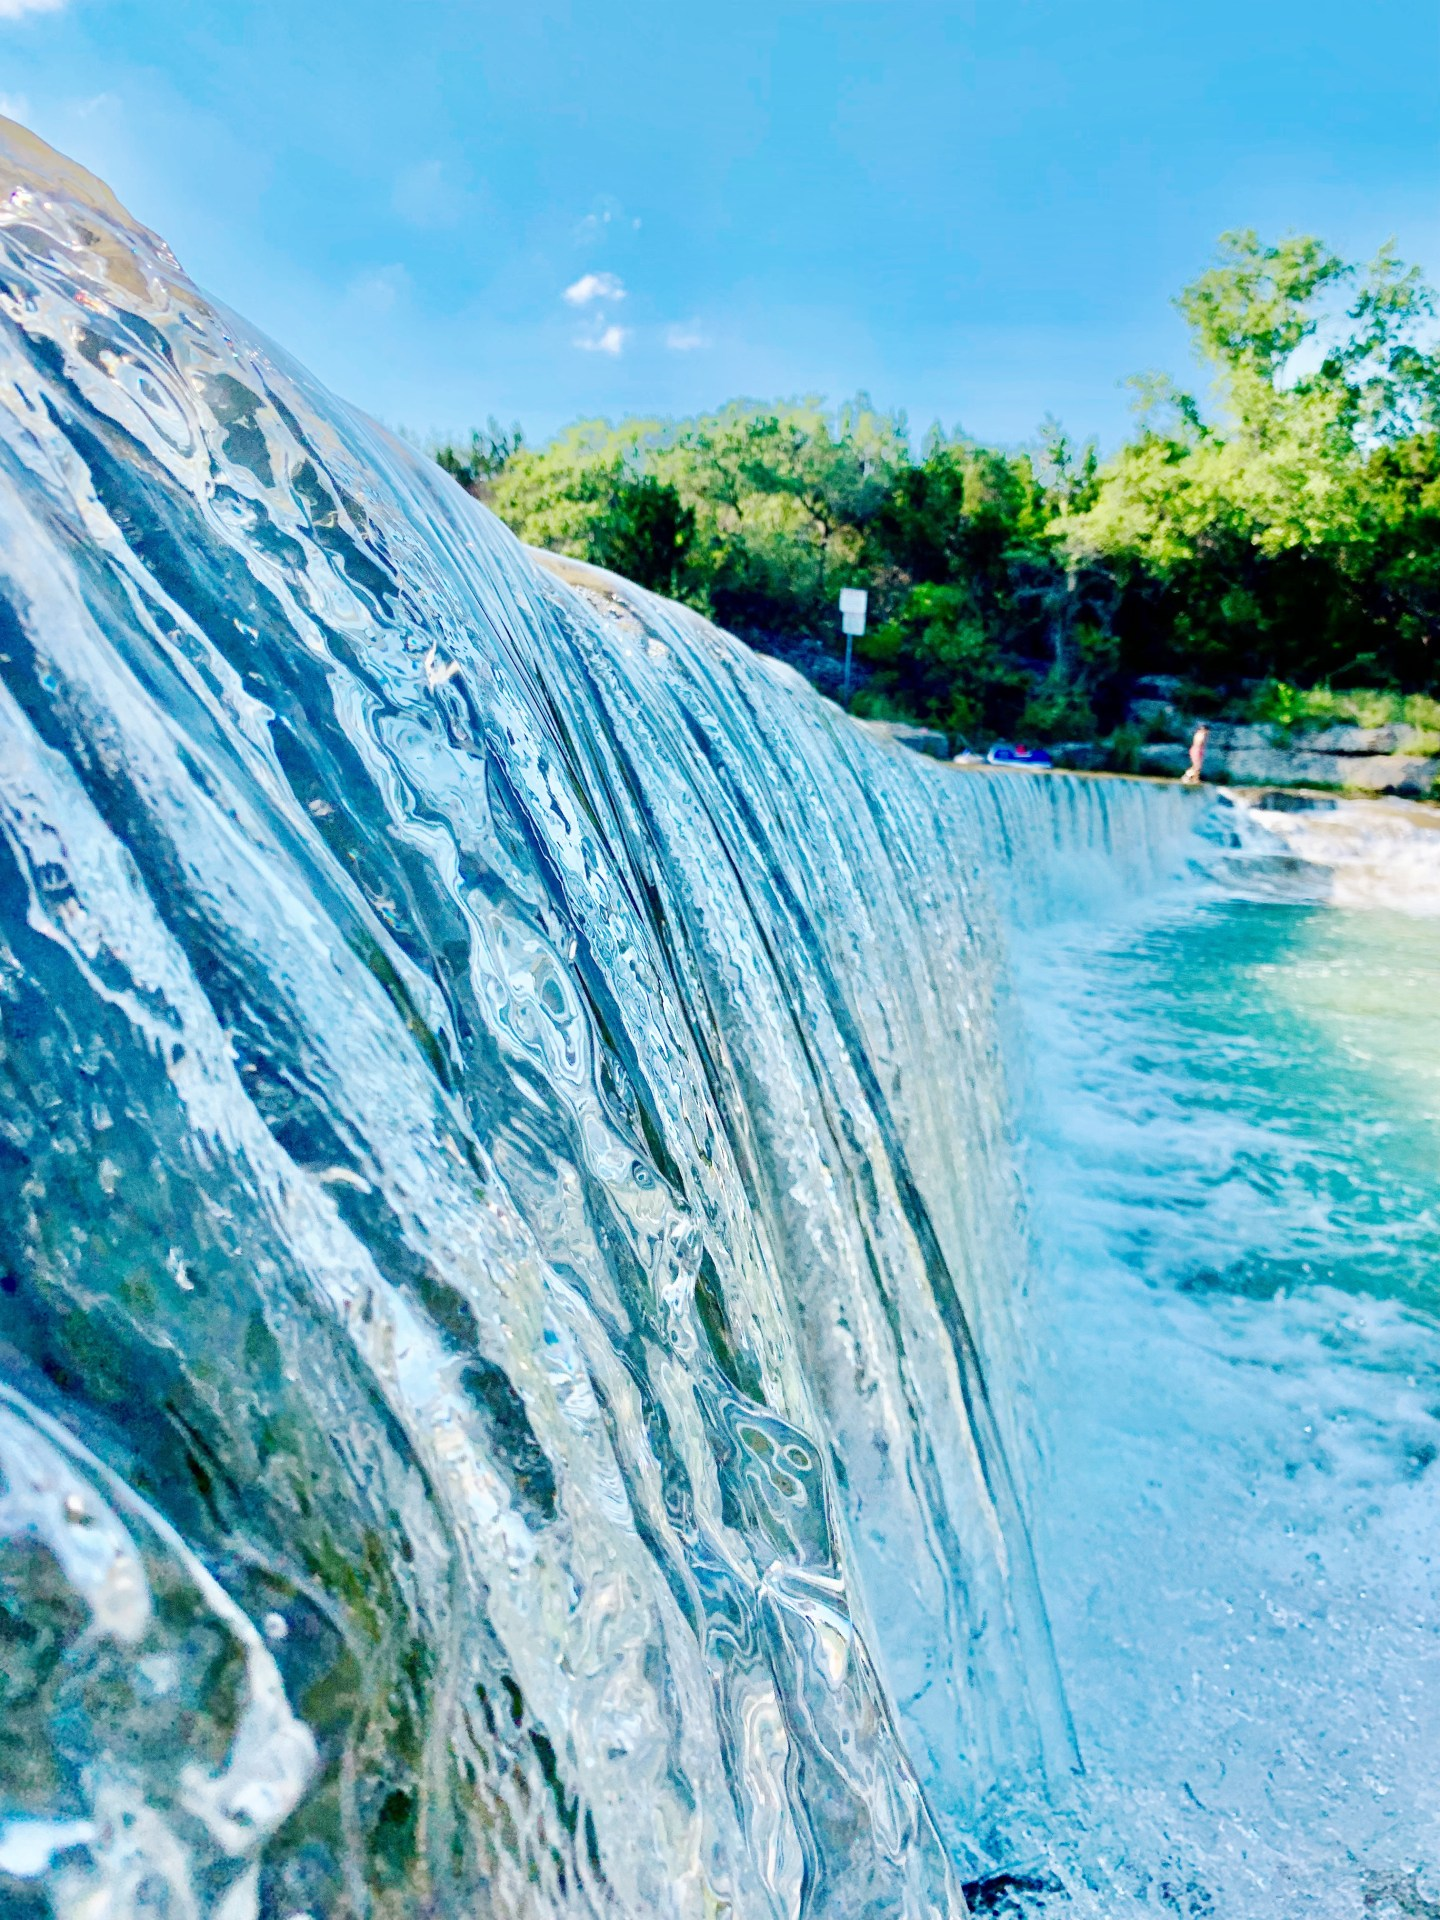 Water flowing over the dam at Blue Hole Park in Georgetown, Texas.